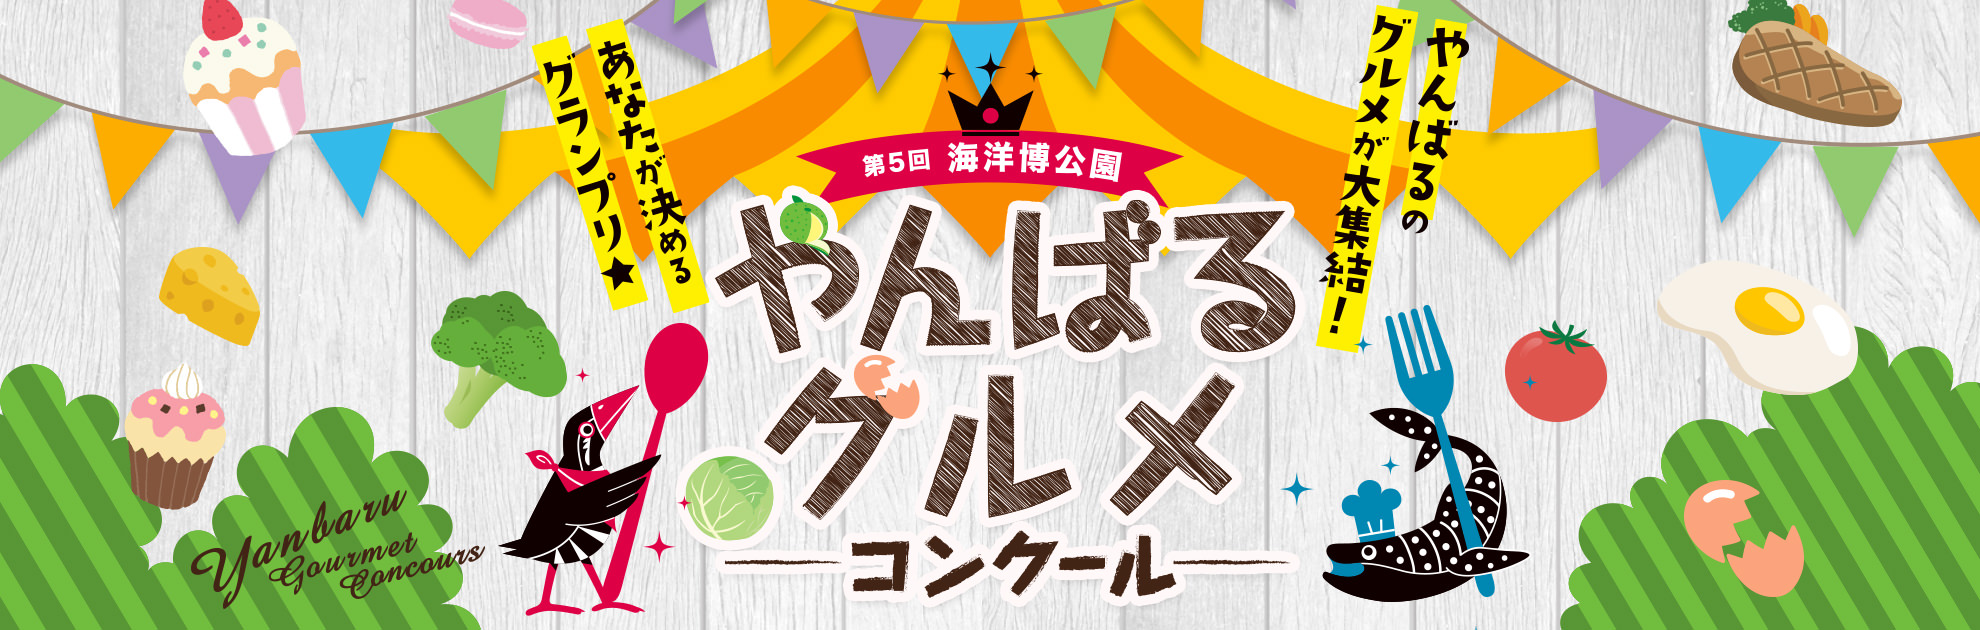 The fifth Ocean Expo Park Yanbaru gourmet contest holding! In autumn of appetite, let's eat up delicious things of Yanbaru!